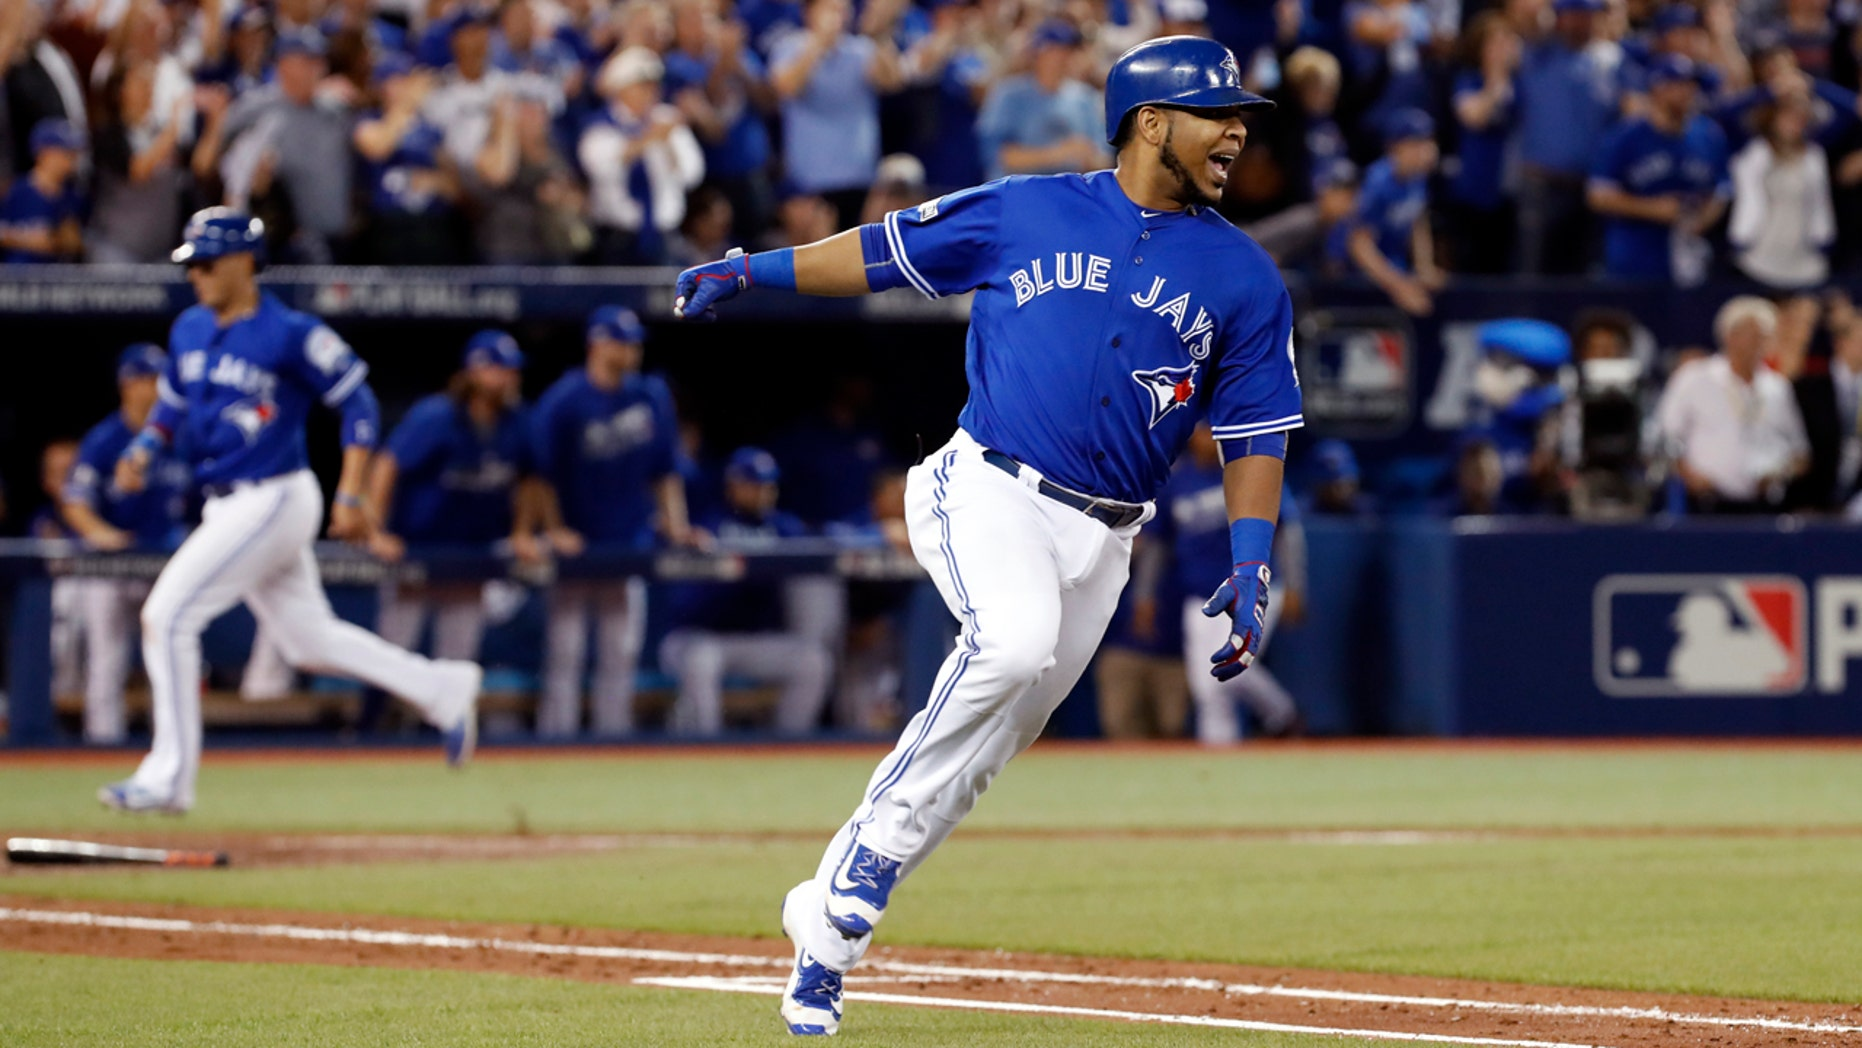 Oct. 18, 2016: Toronto Blue Jays' Edwin Encarnacion celebrates after his two-RBI double against the Cleveland Indians during the seventh inning in Game 4 of baseball's American League Championship Series in Toronto.